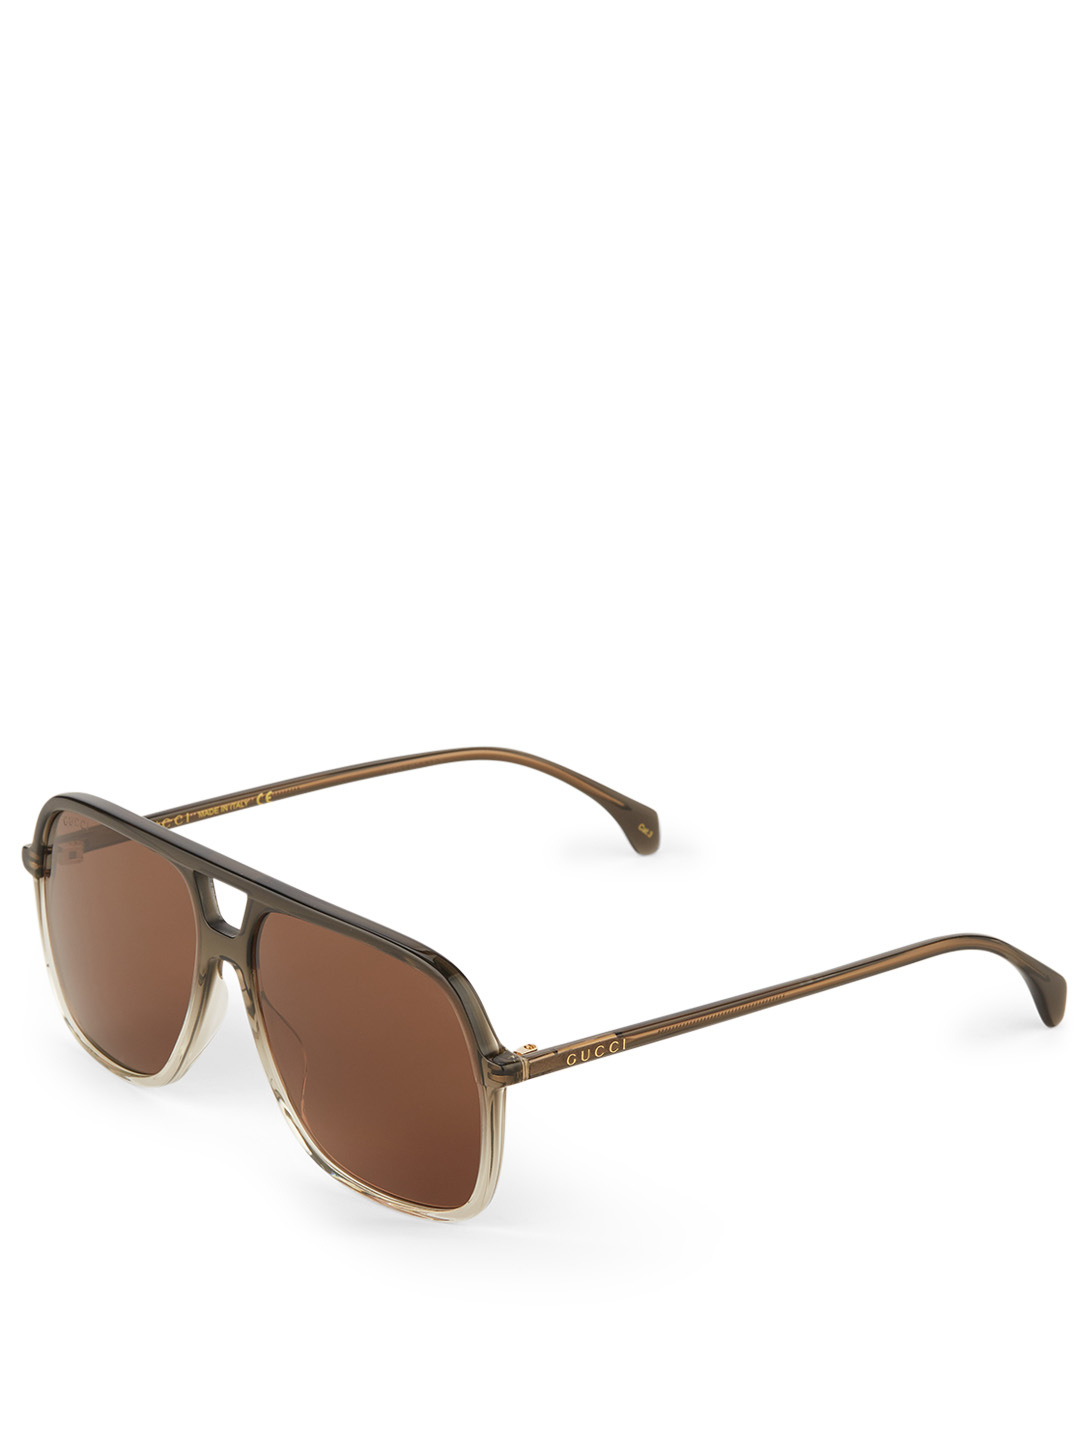 GUCCI Aviator Sunglasses Men's Green